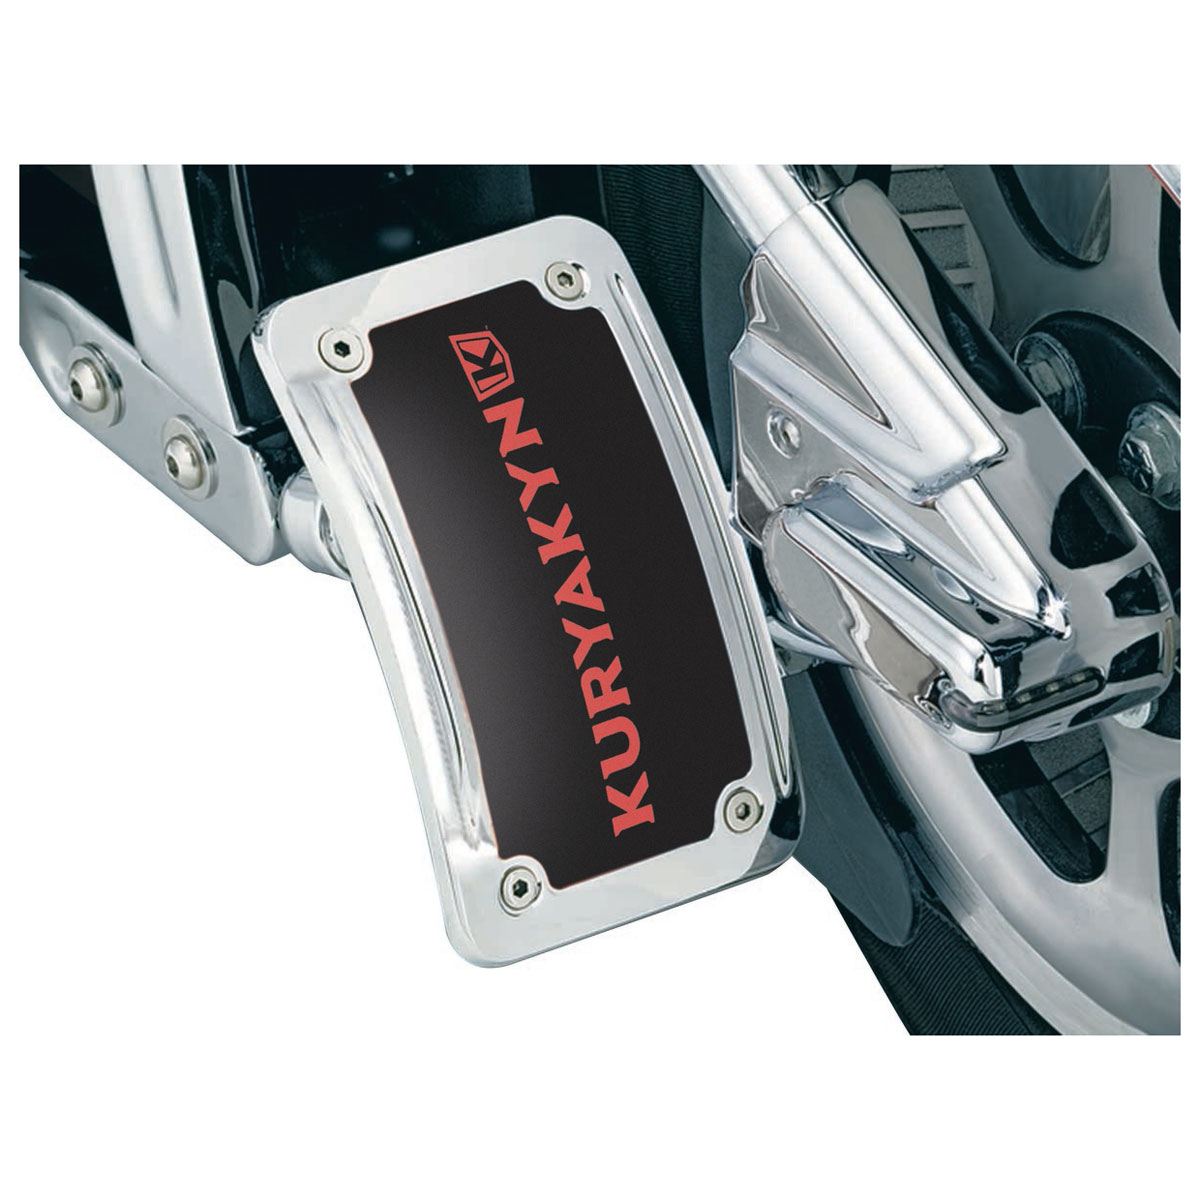 Kuryakyn Curved Vertical Side Mount License Plate Holder & Kuryakyn Curved Vertical Side Mount License Plate Holder | 534-219 ...